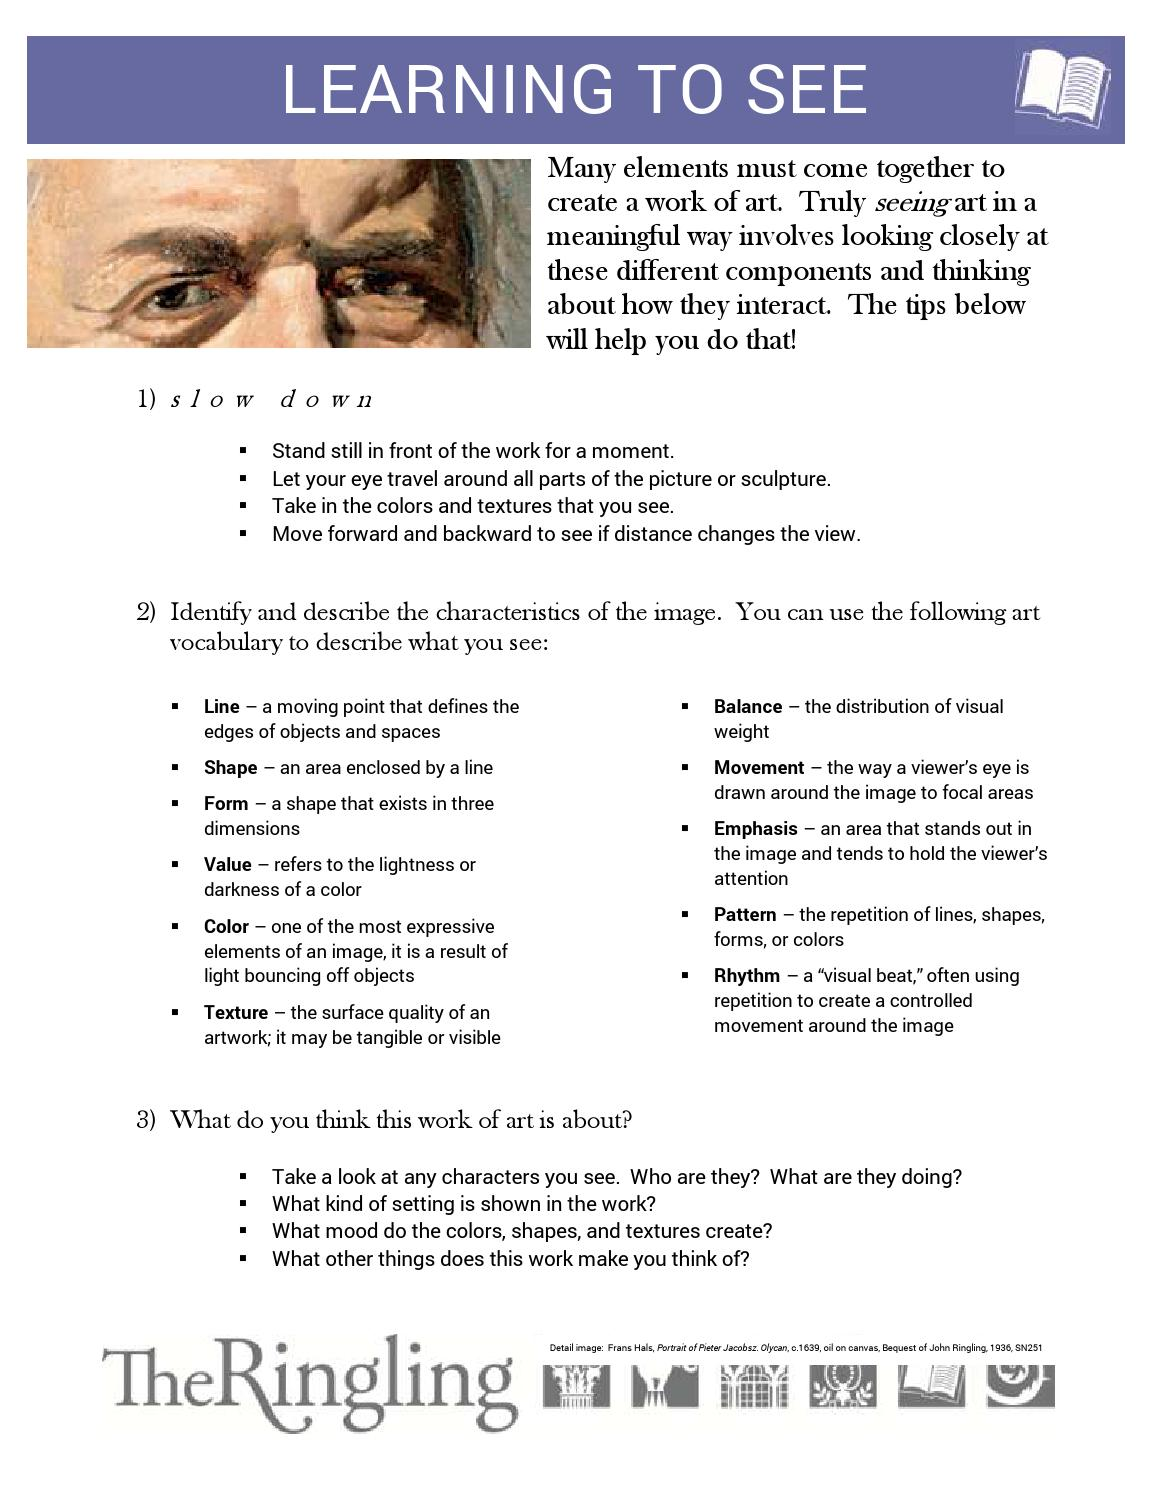 Gallery Worksheet: Learning to See by John and Mable Ringling Museum